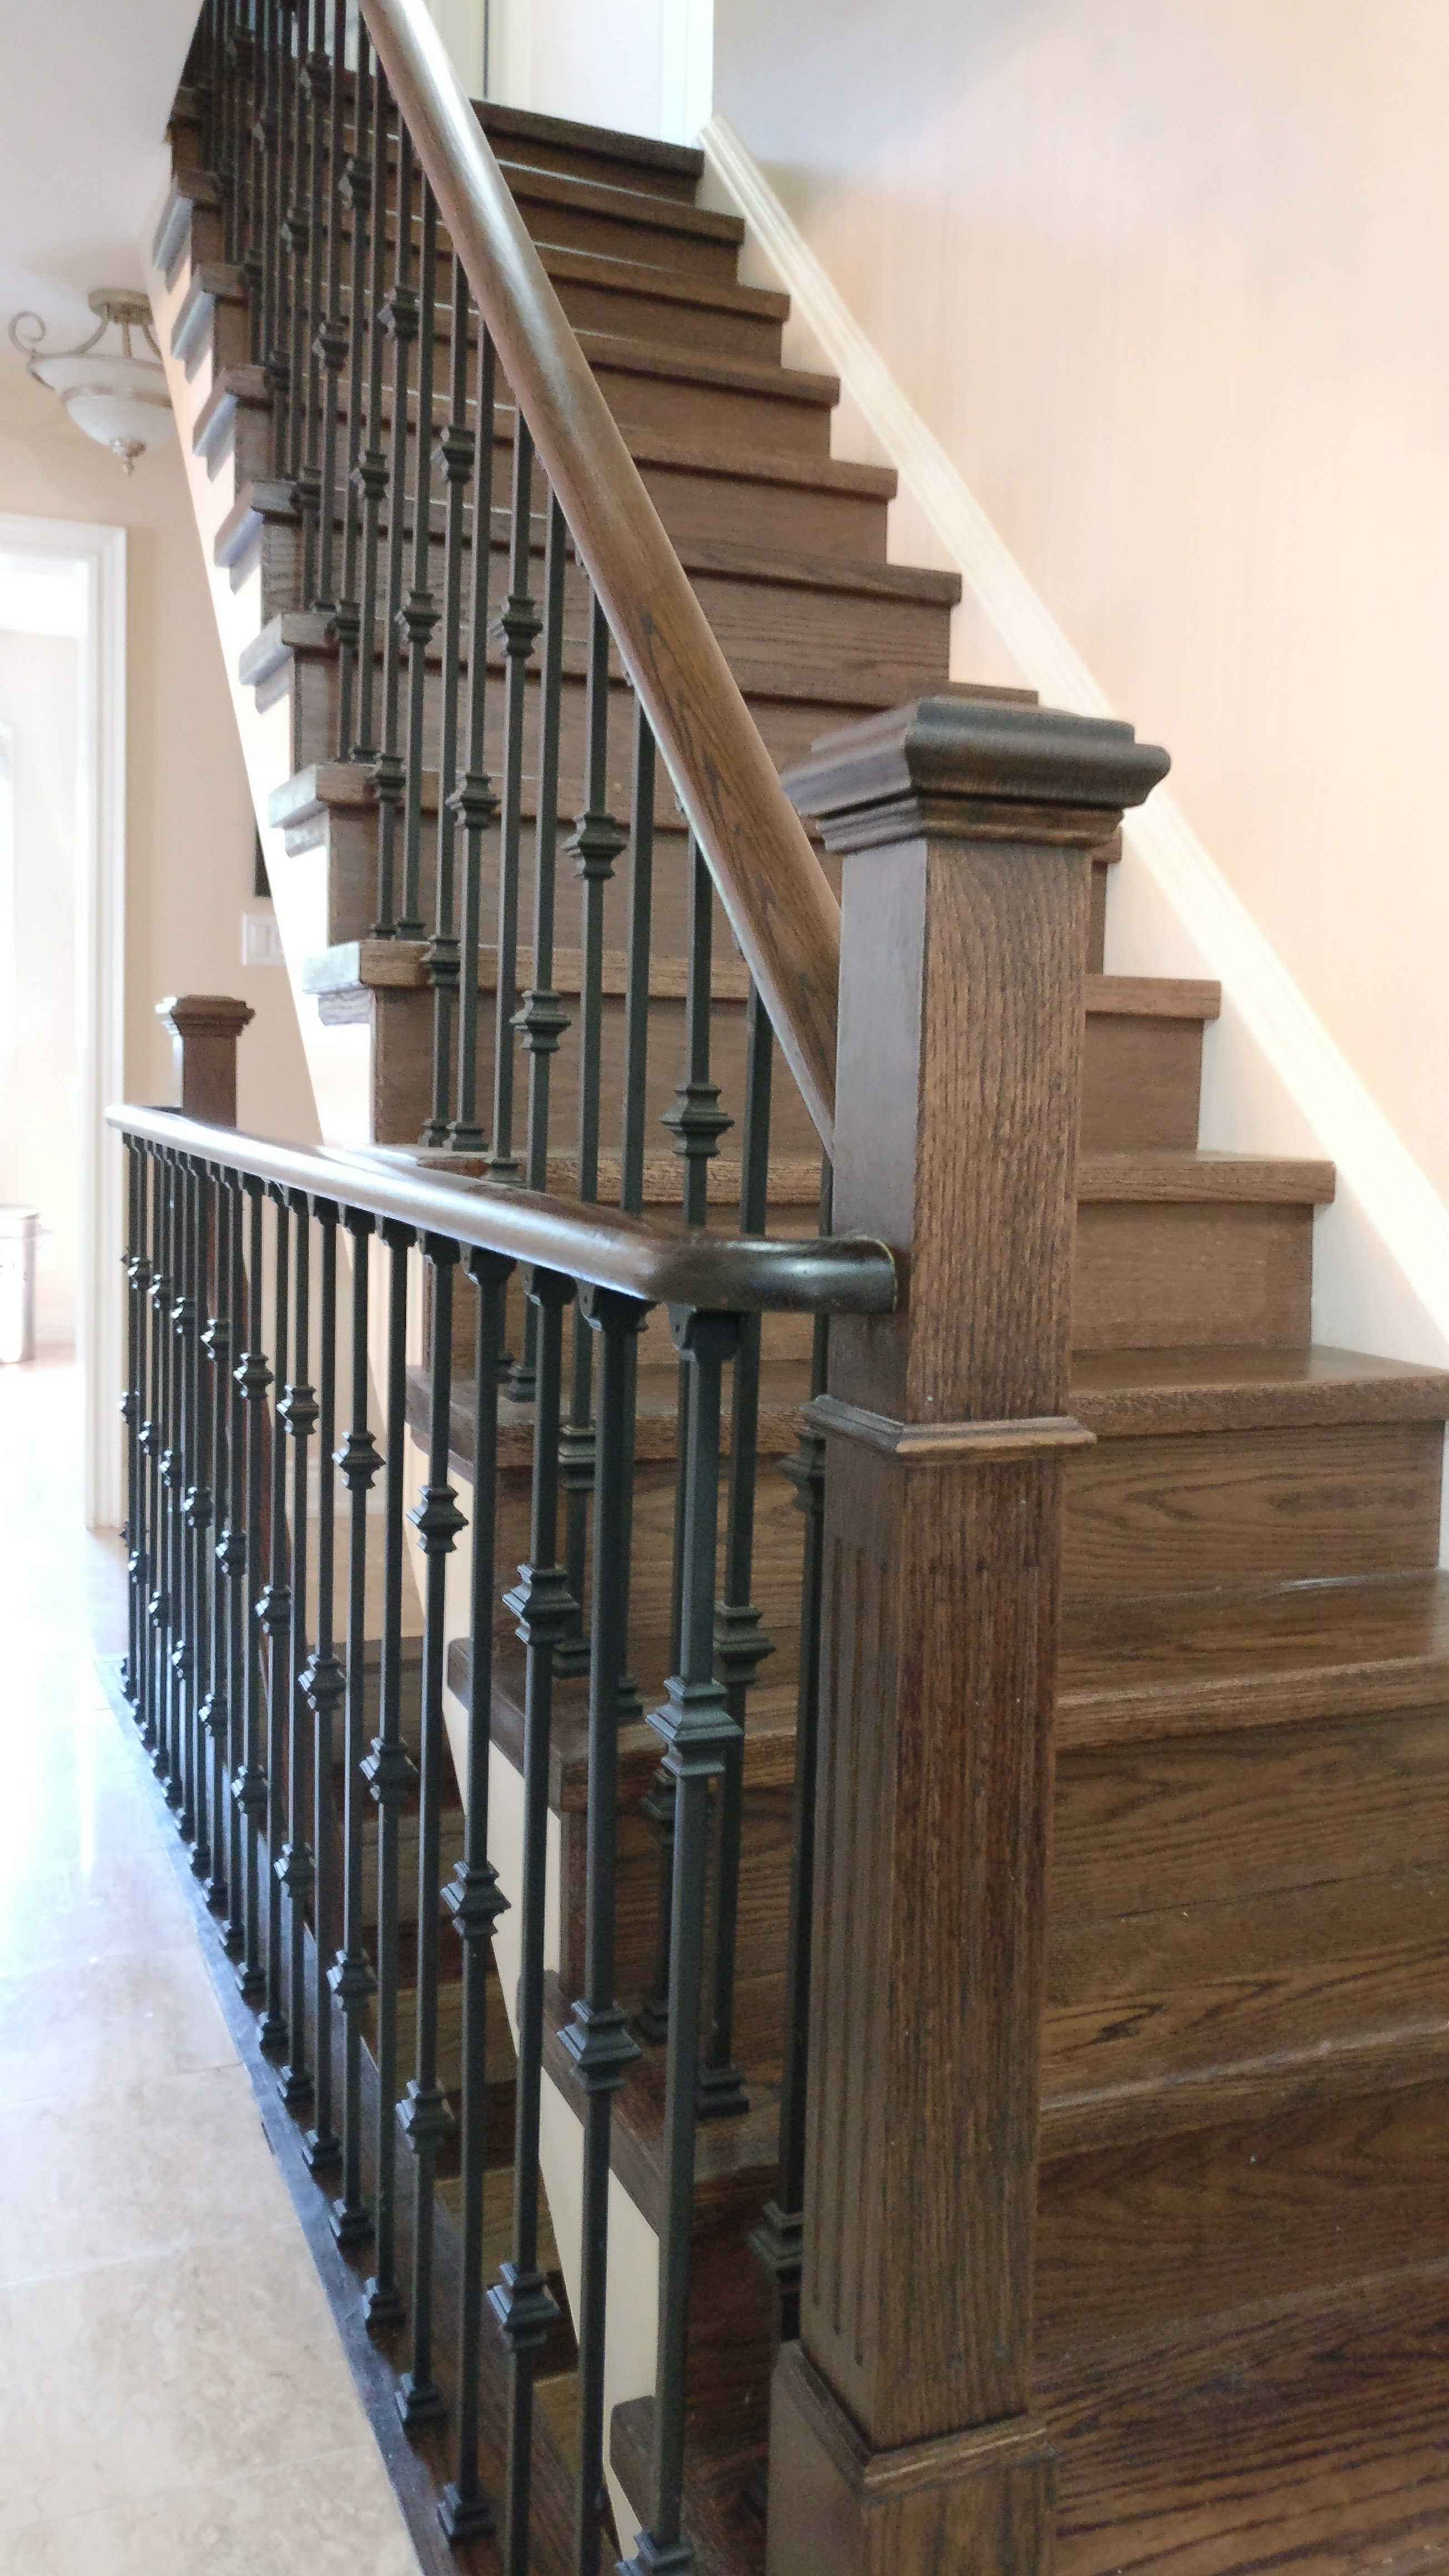 Refinish Stairs Install New Handrail Love Your Stairs